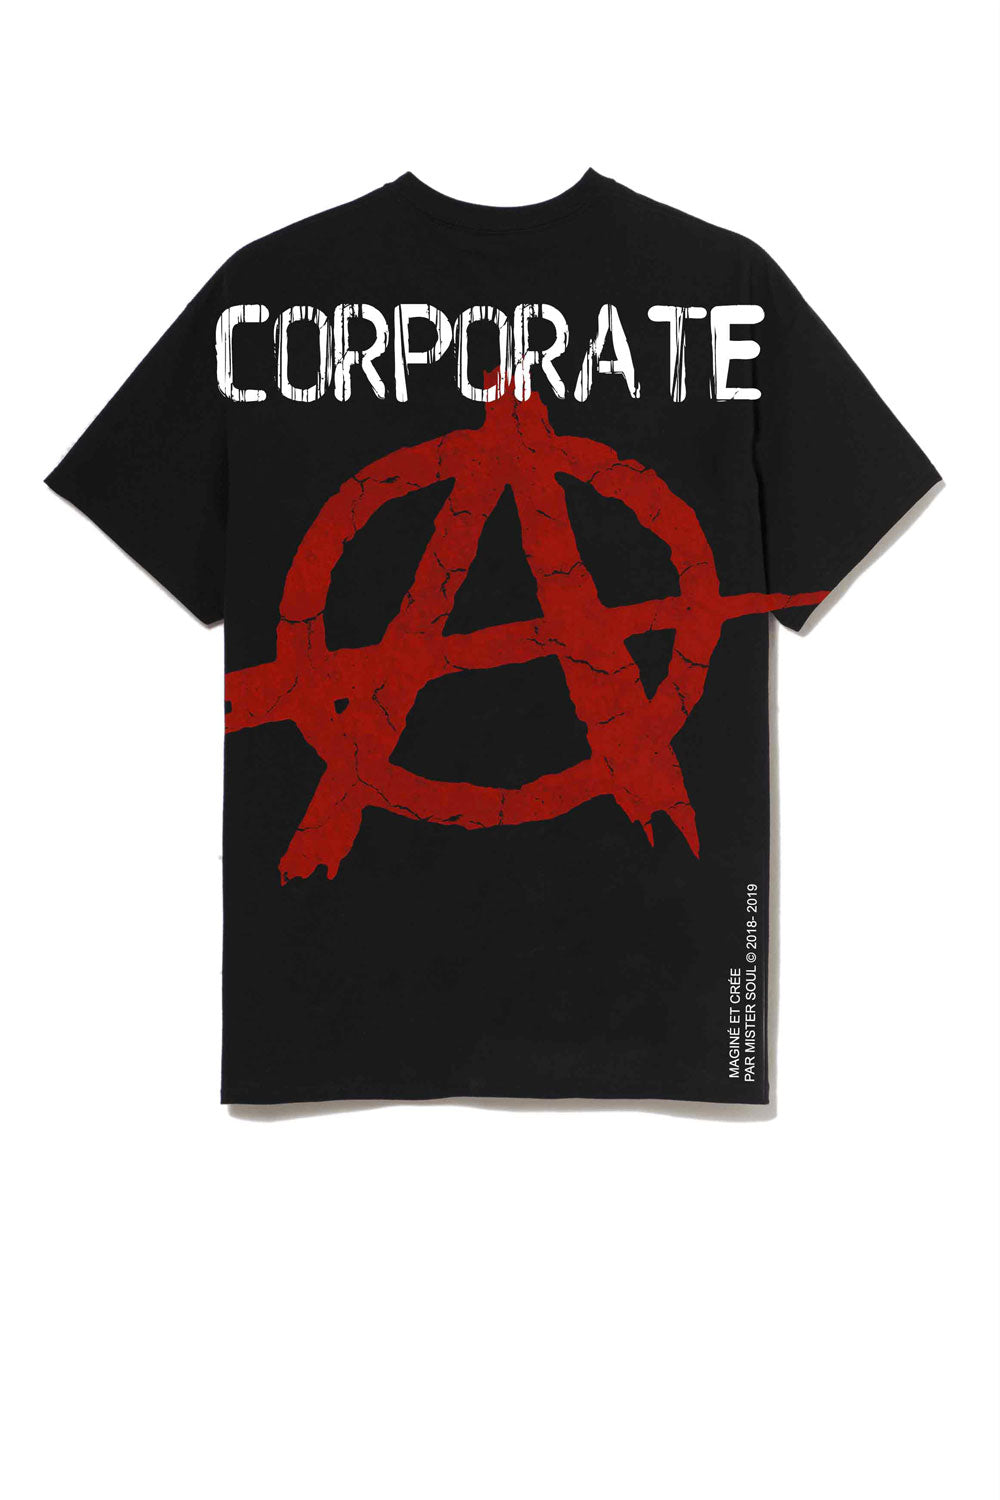 Leroyaume T-shirt Streetwear Corporate Arnachy Black Dos